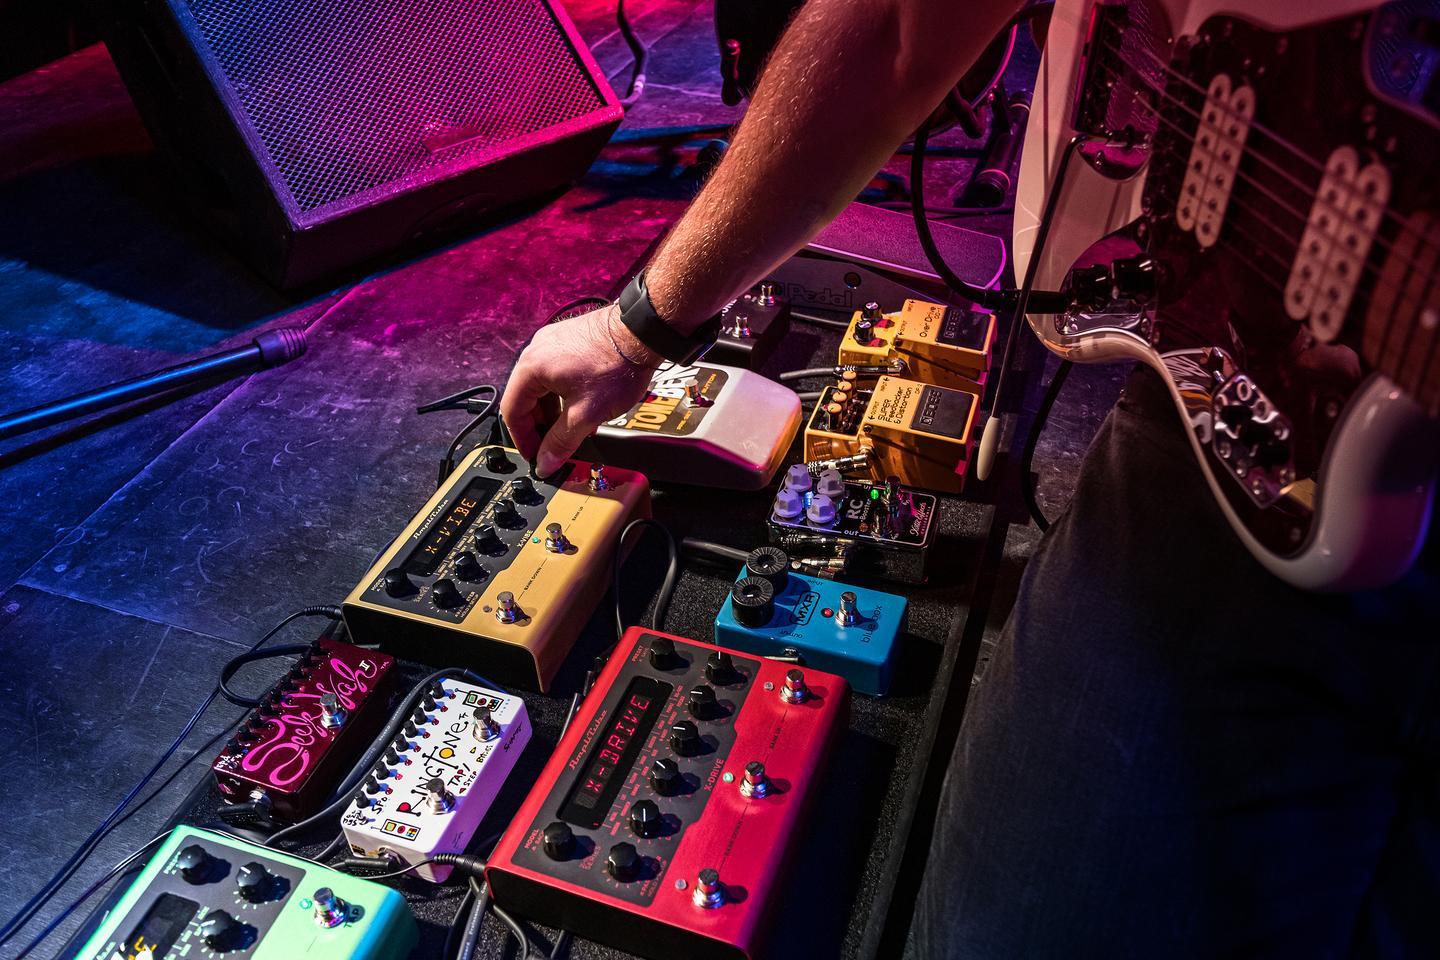 Parameters and settings can be tweaked using the control knobs on each X-Gear stomp, with a high-contrast LED display keeping players in the know